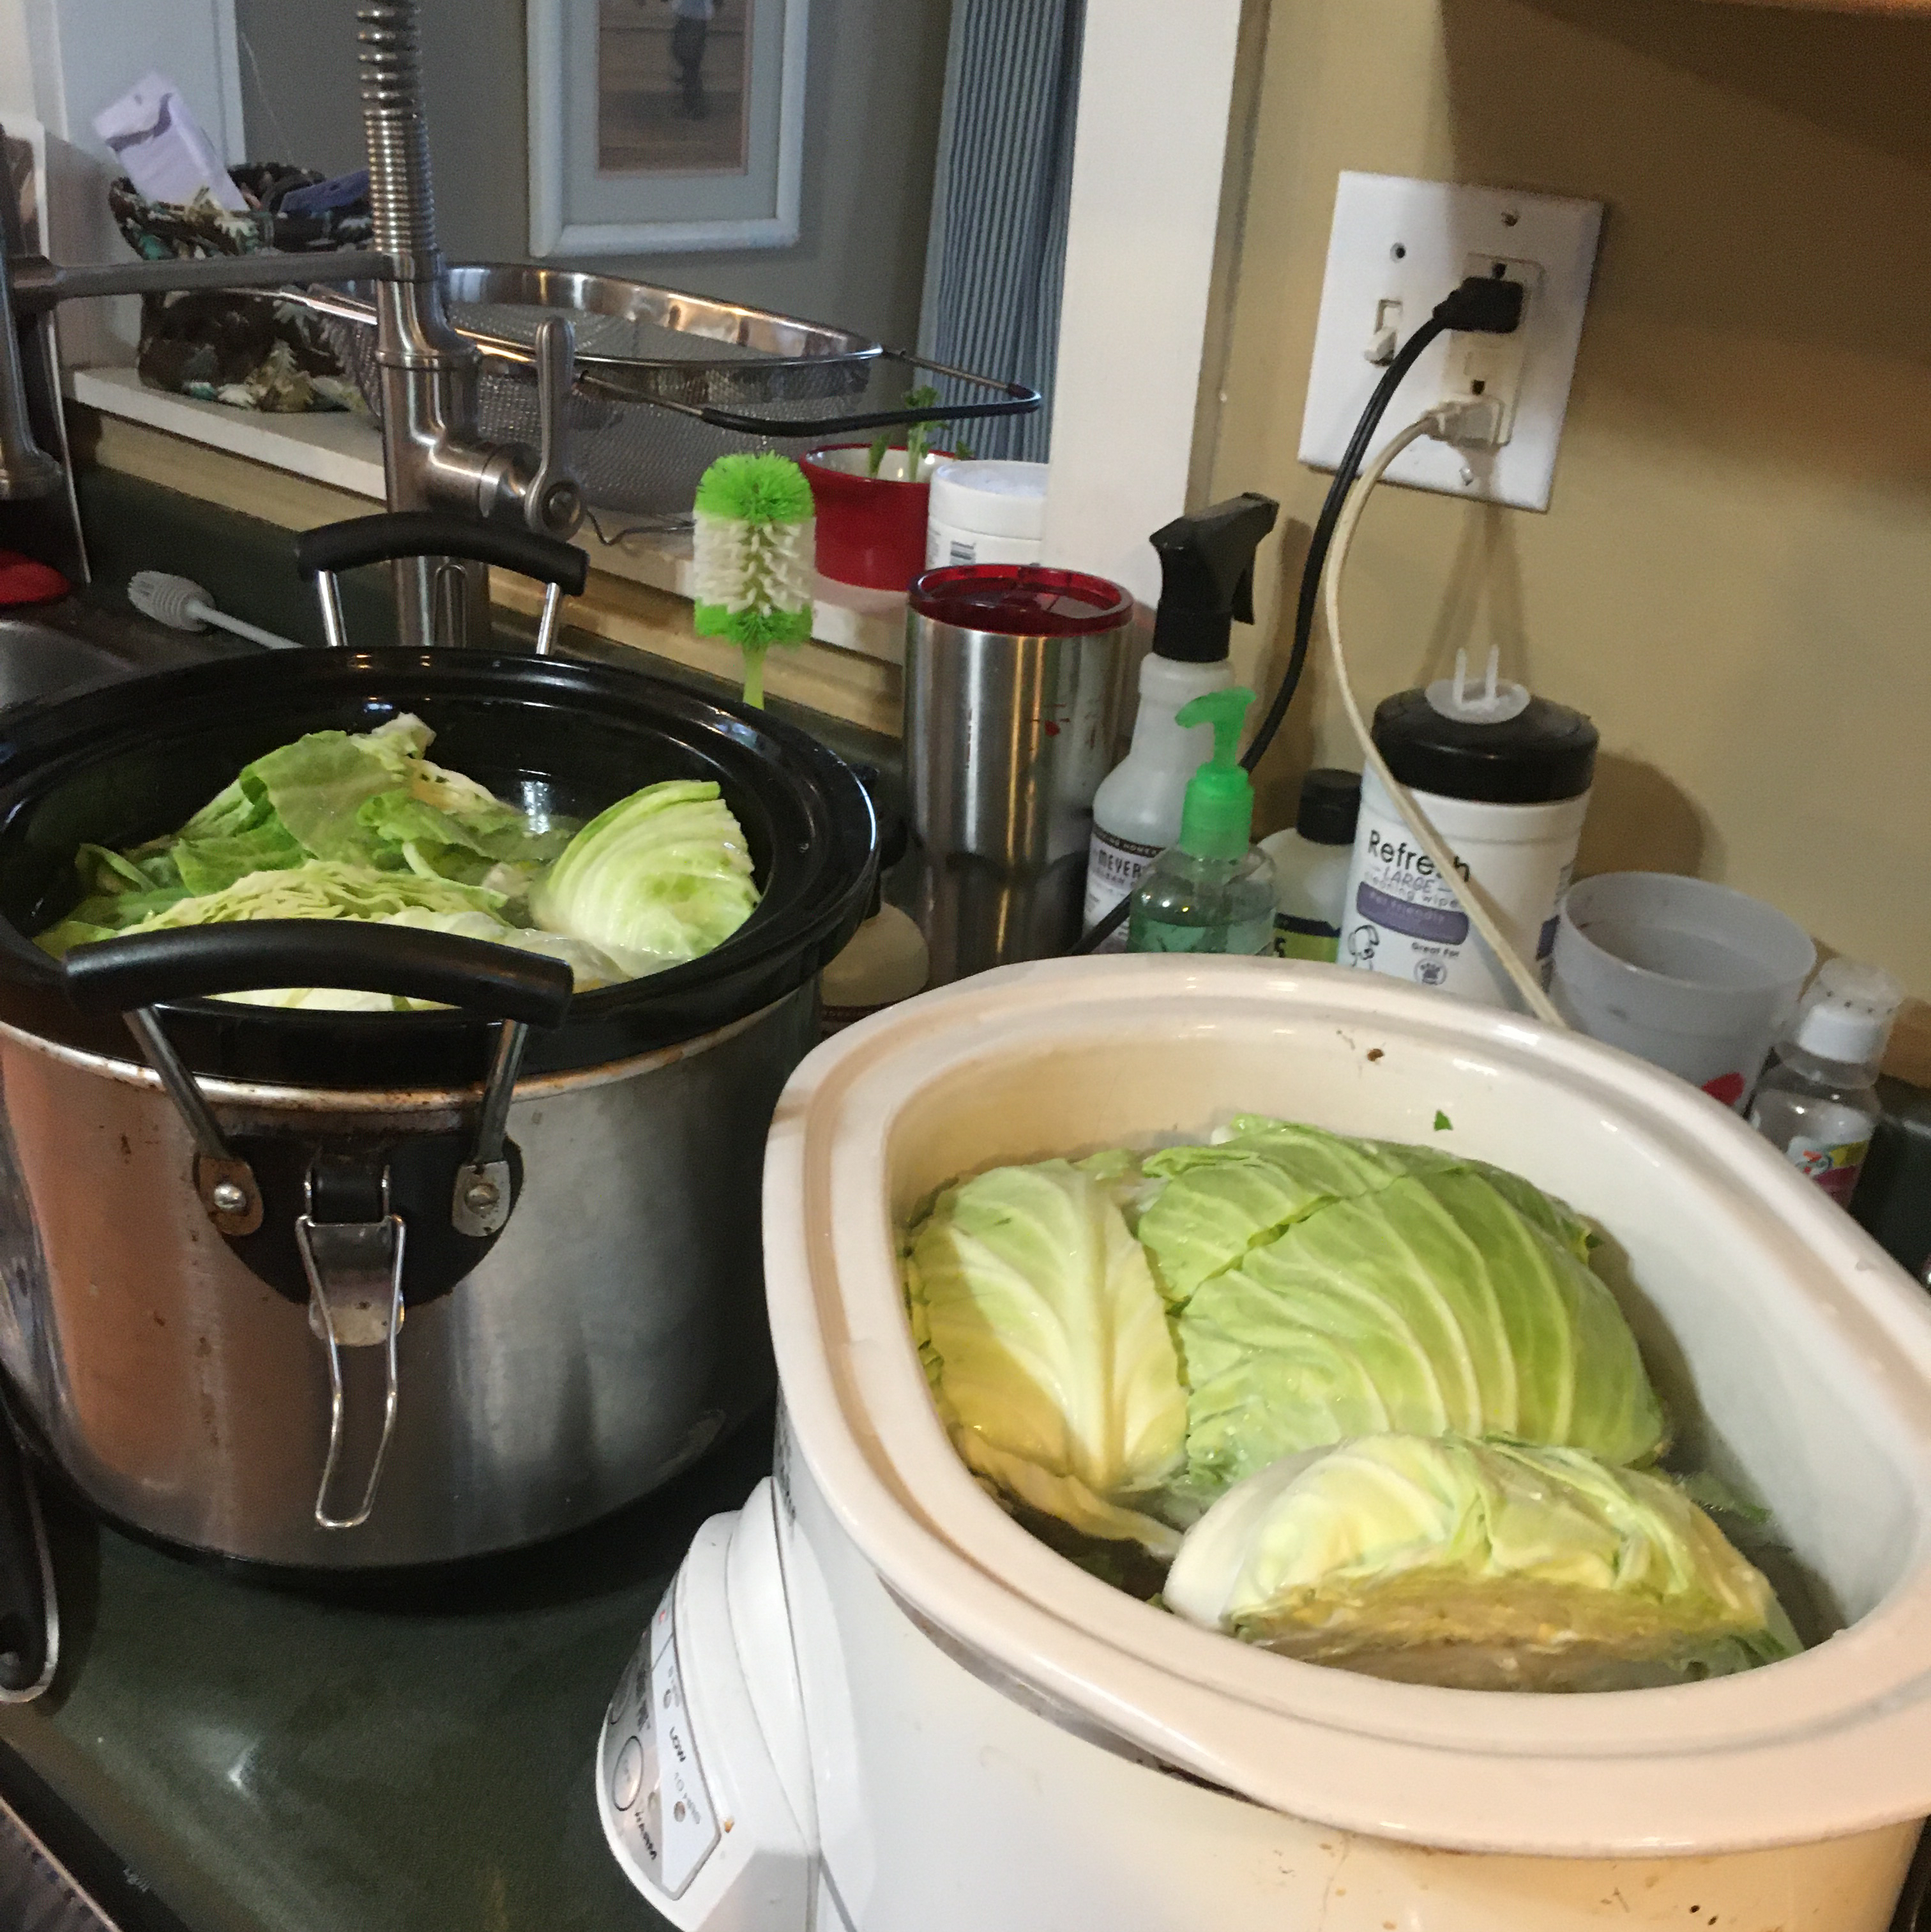 Chef John's Corned Beef and Cabbage